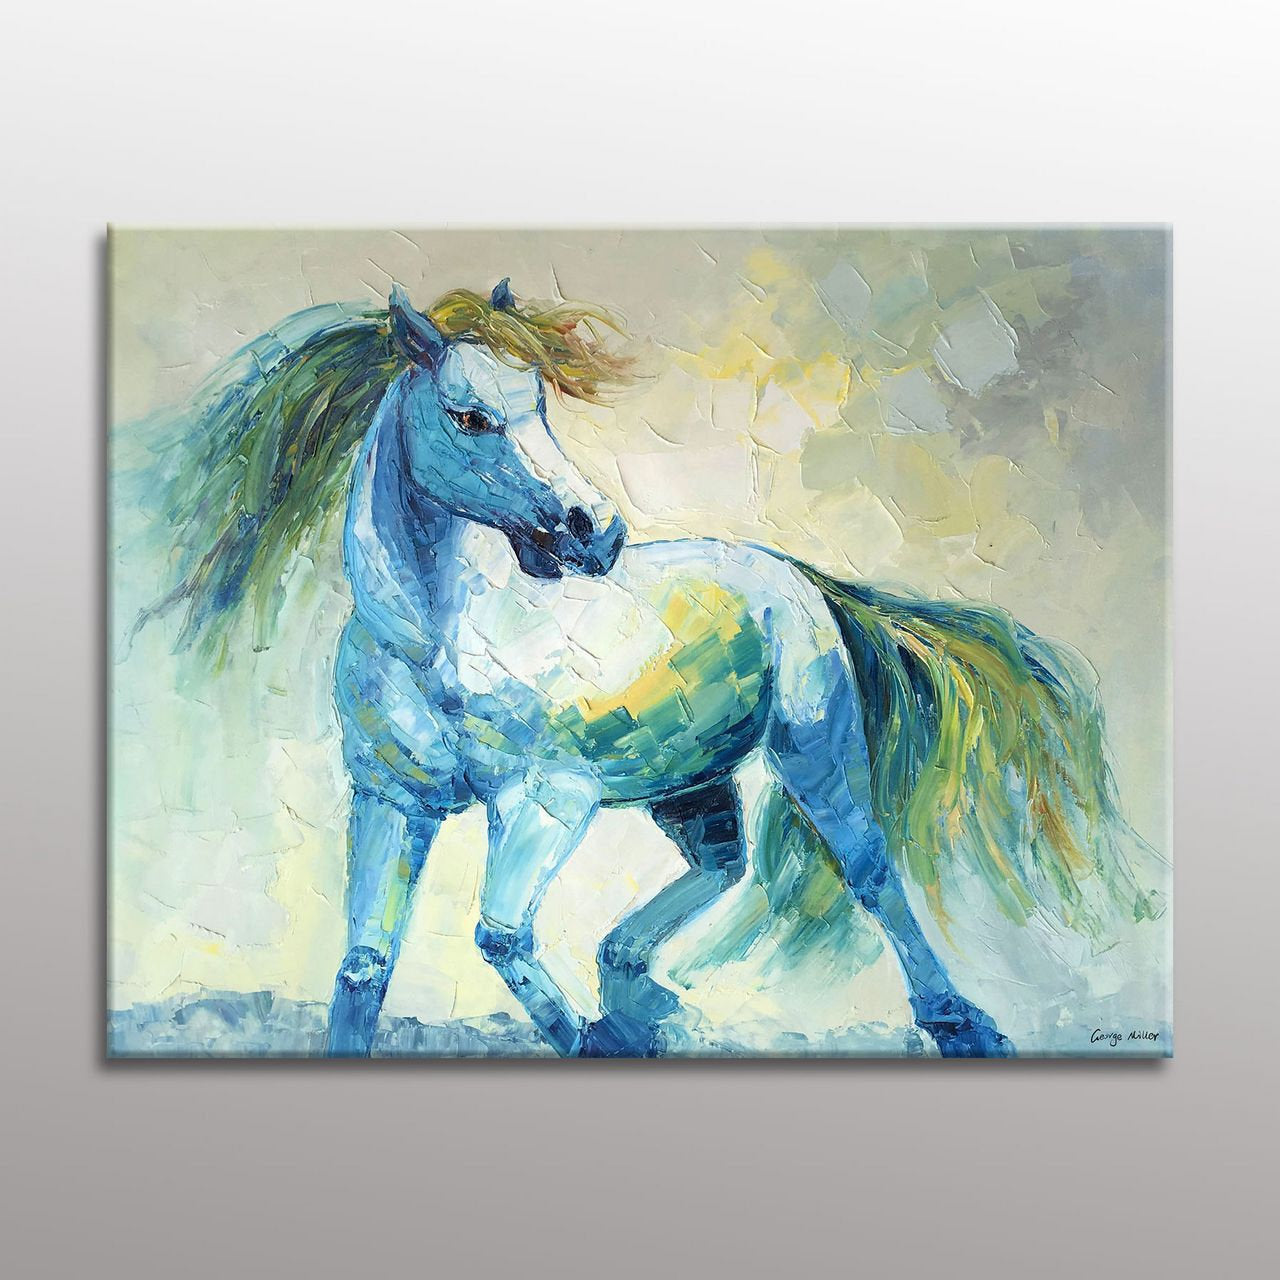 Abstract Art, Large Canvas Painting, Horse Artwork, Contemporary Art, Coffee Wall Art, Bedroom Wall Decor, Abstract Canvas Art, Original Art